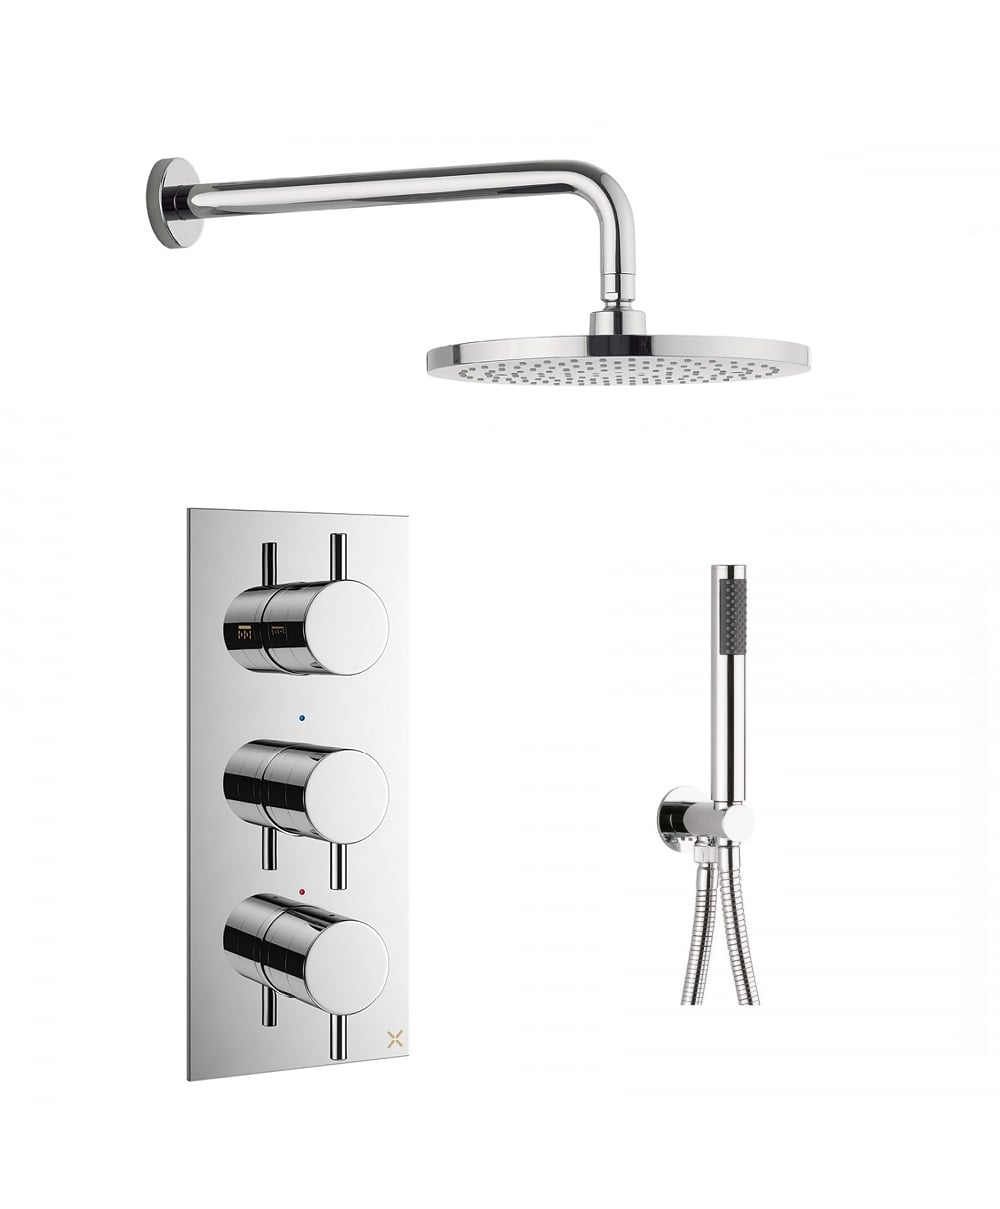 Crosswater Mike Pro Thermostatic Valve Arm Showerhead